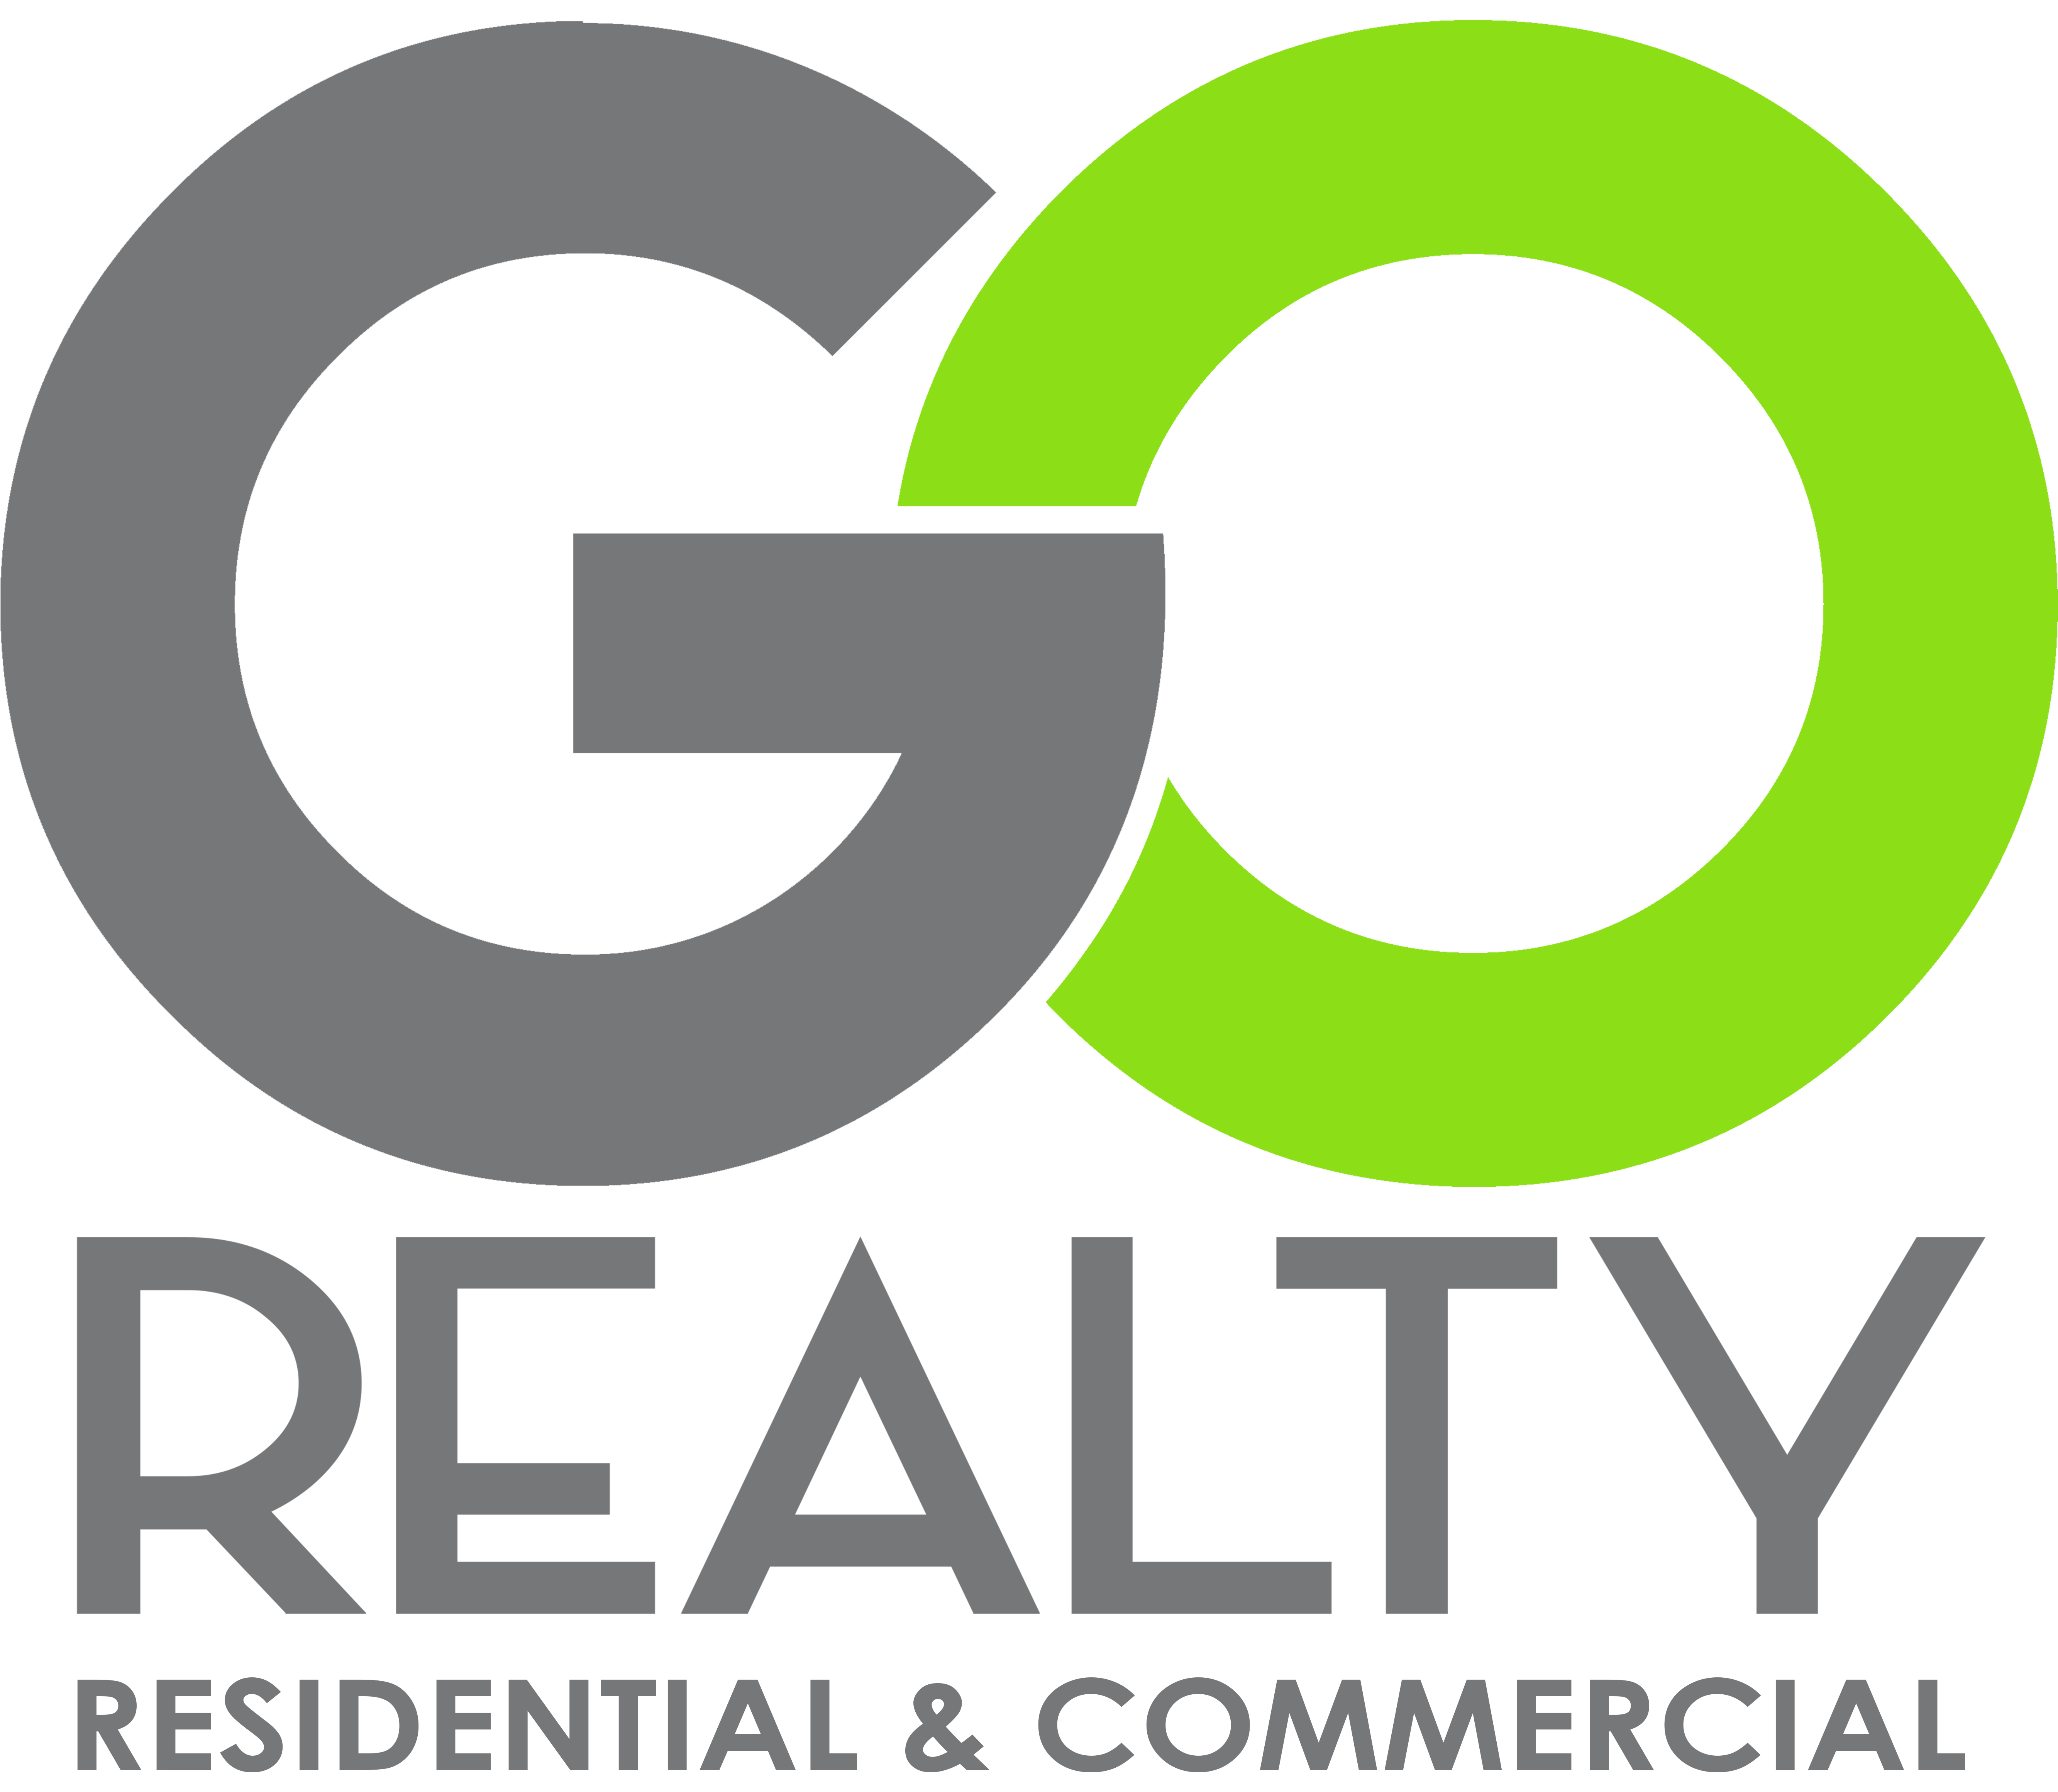 Go realty residential commercial residential commercial real estate services biocorpaavc